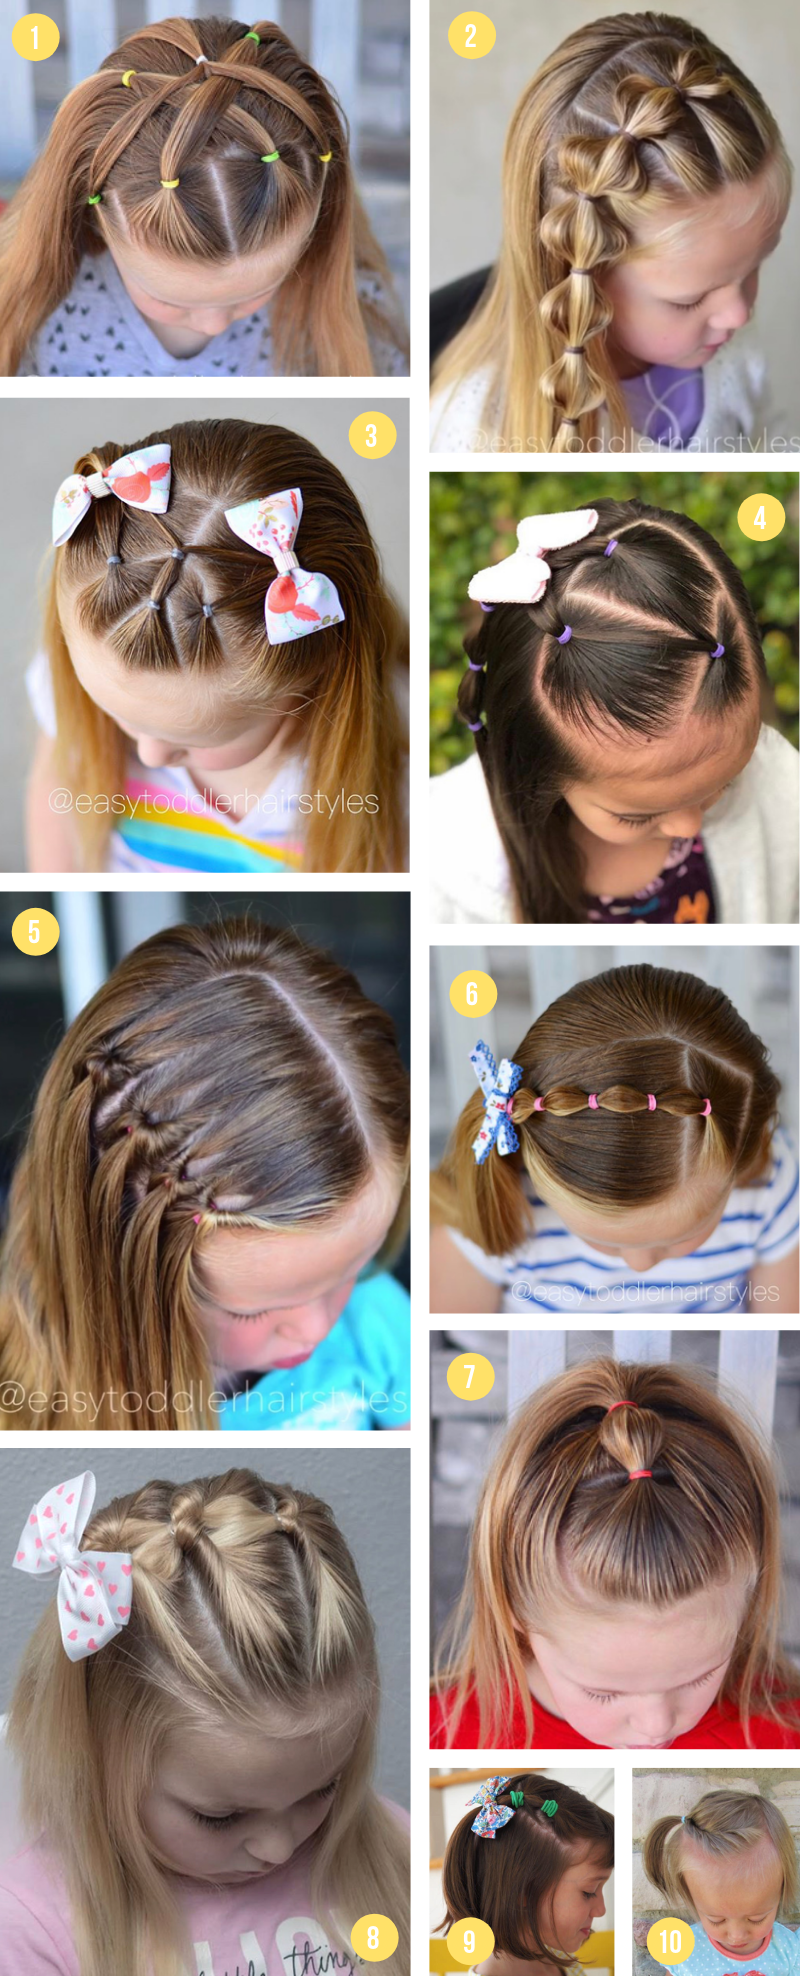 Easy Girls Hairstyles For Toddlers, Tweens & Teens - what moms love